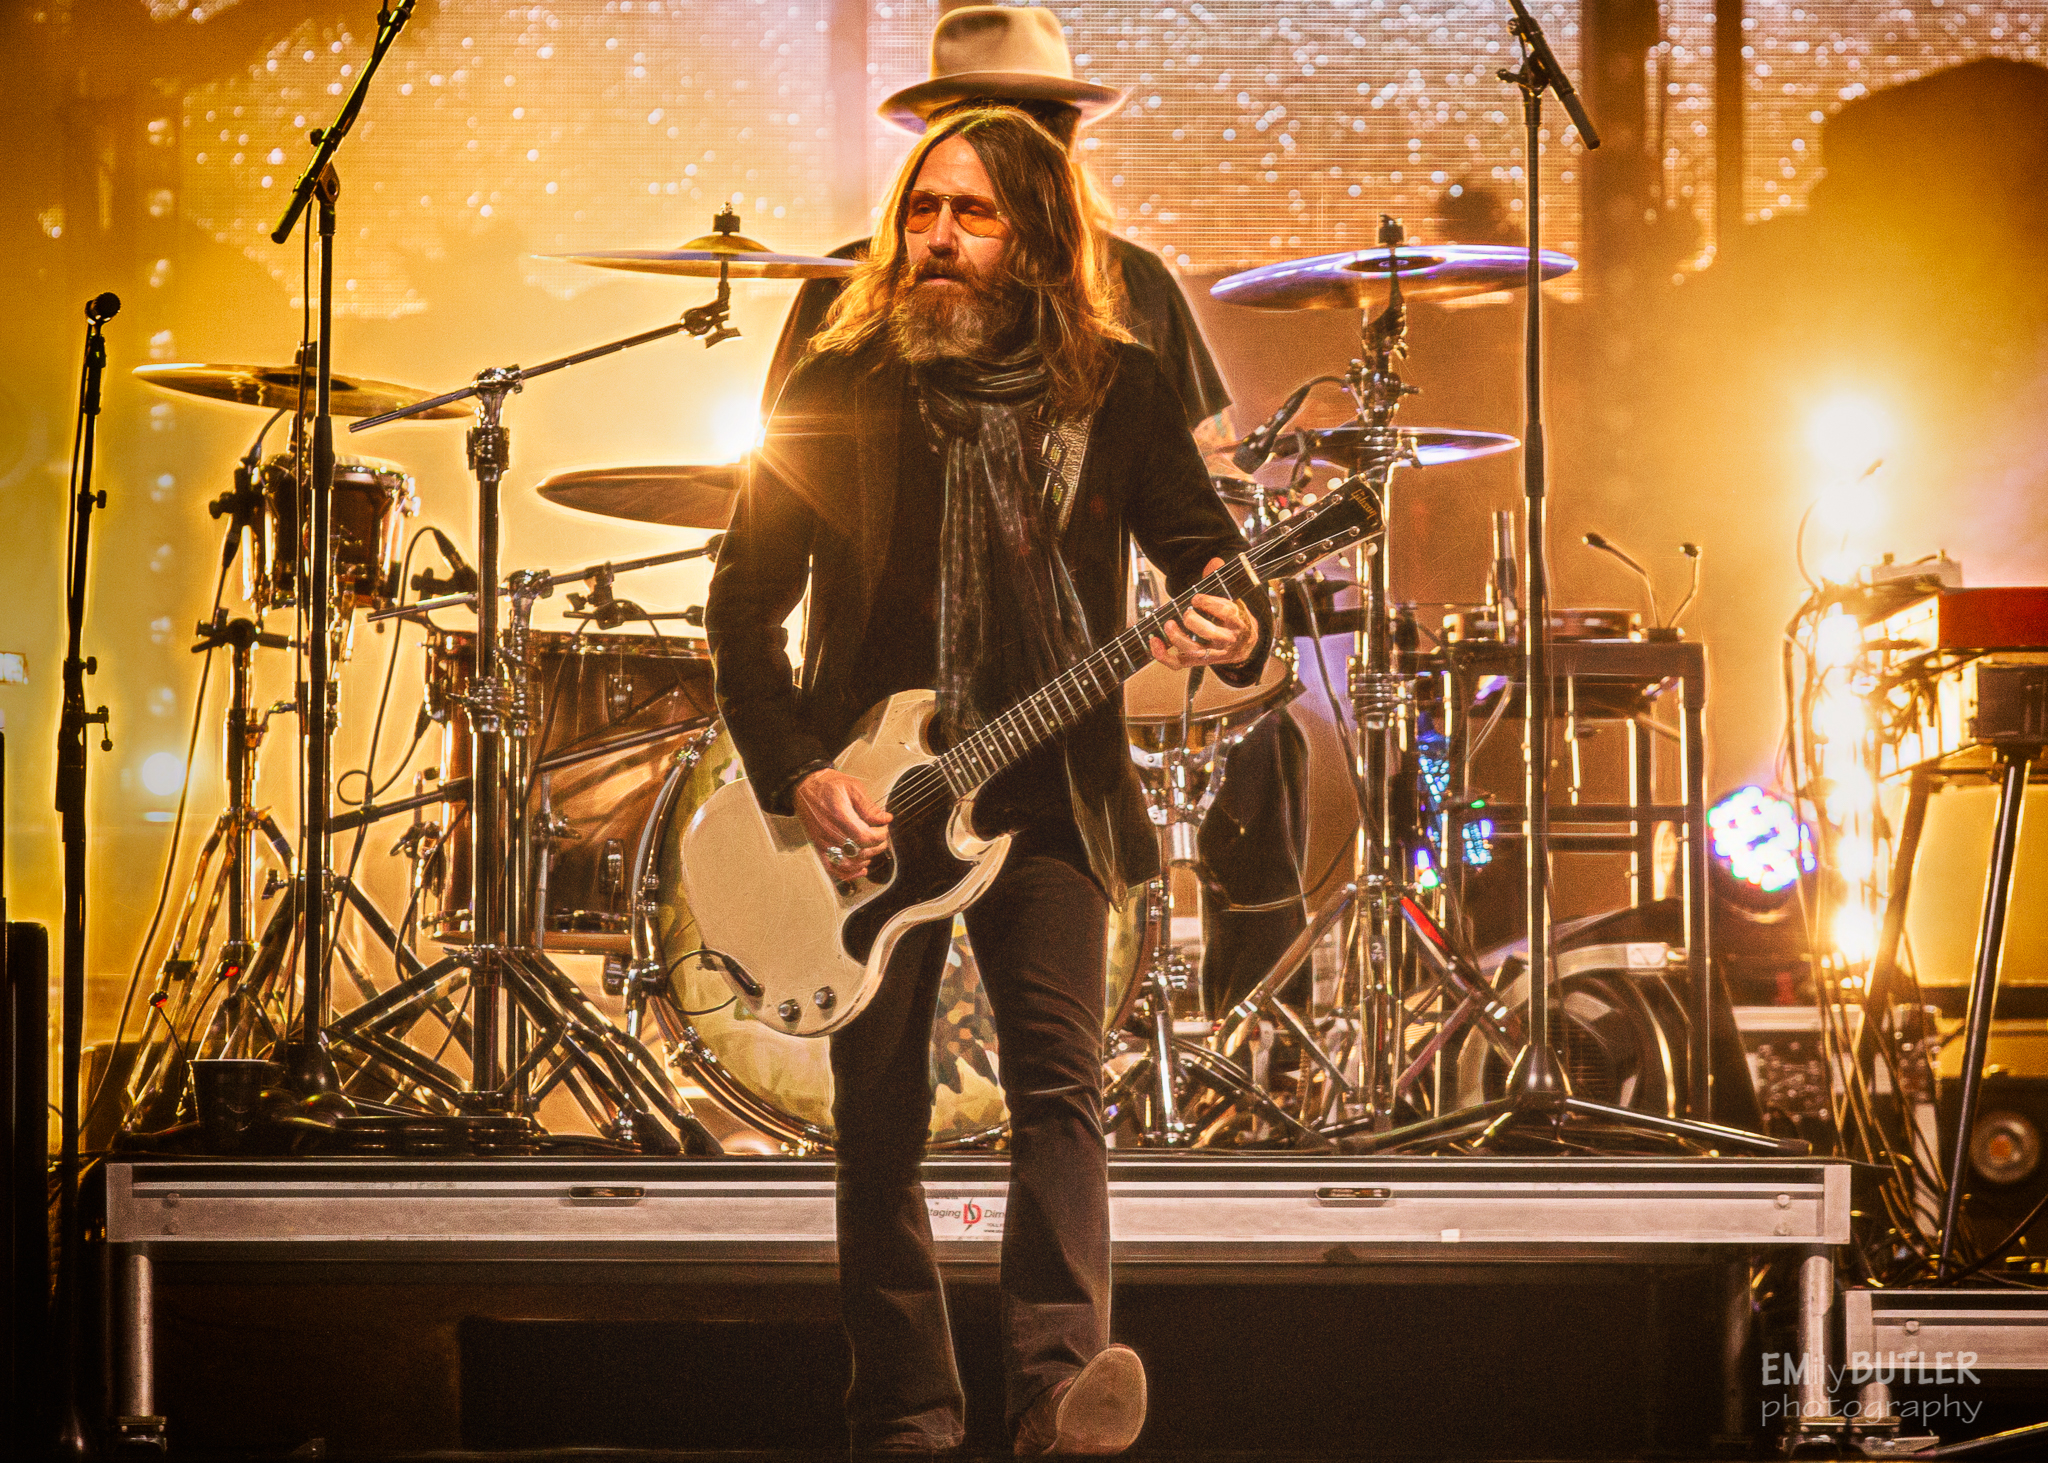 Live From The Drive-In Featuring Blackberry Smoke at Ameris Bank Amphitheatre 10/17/20